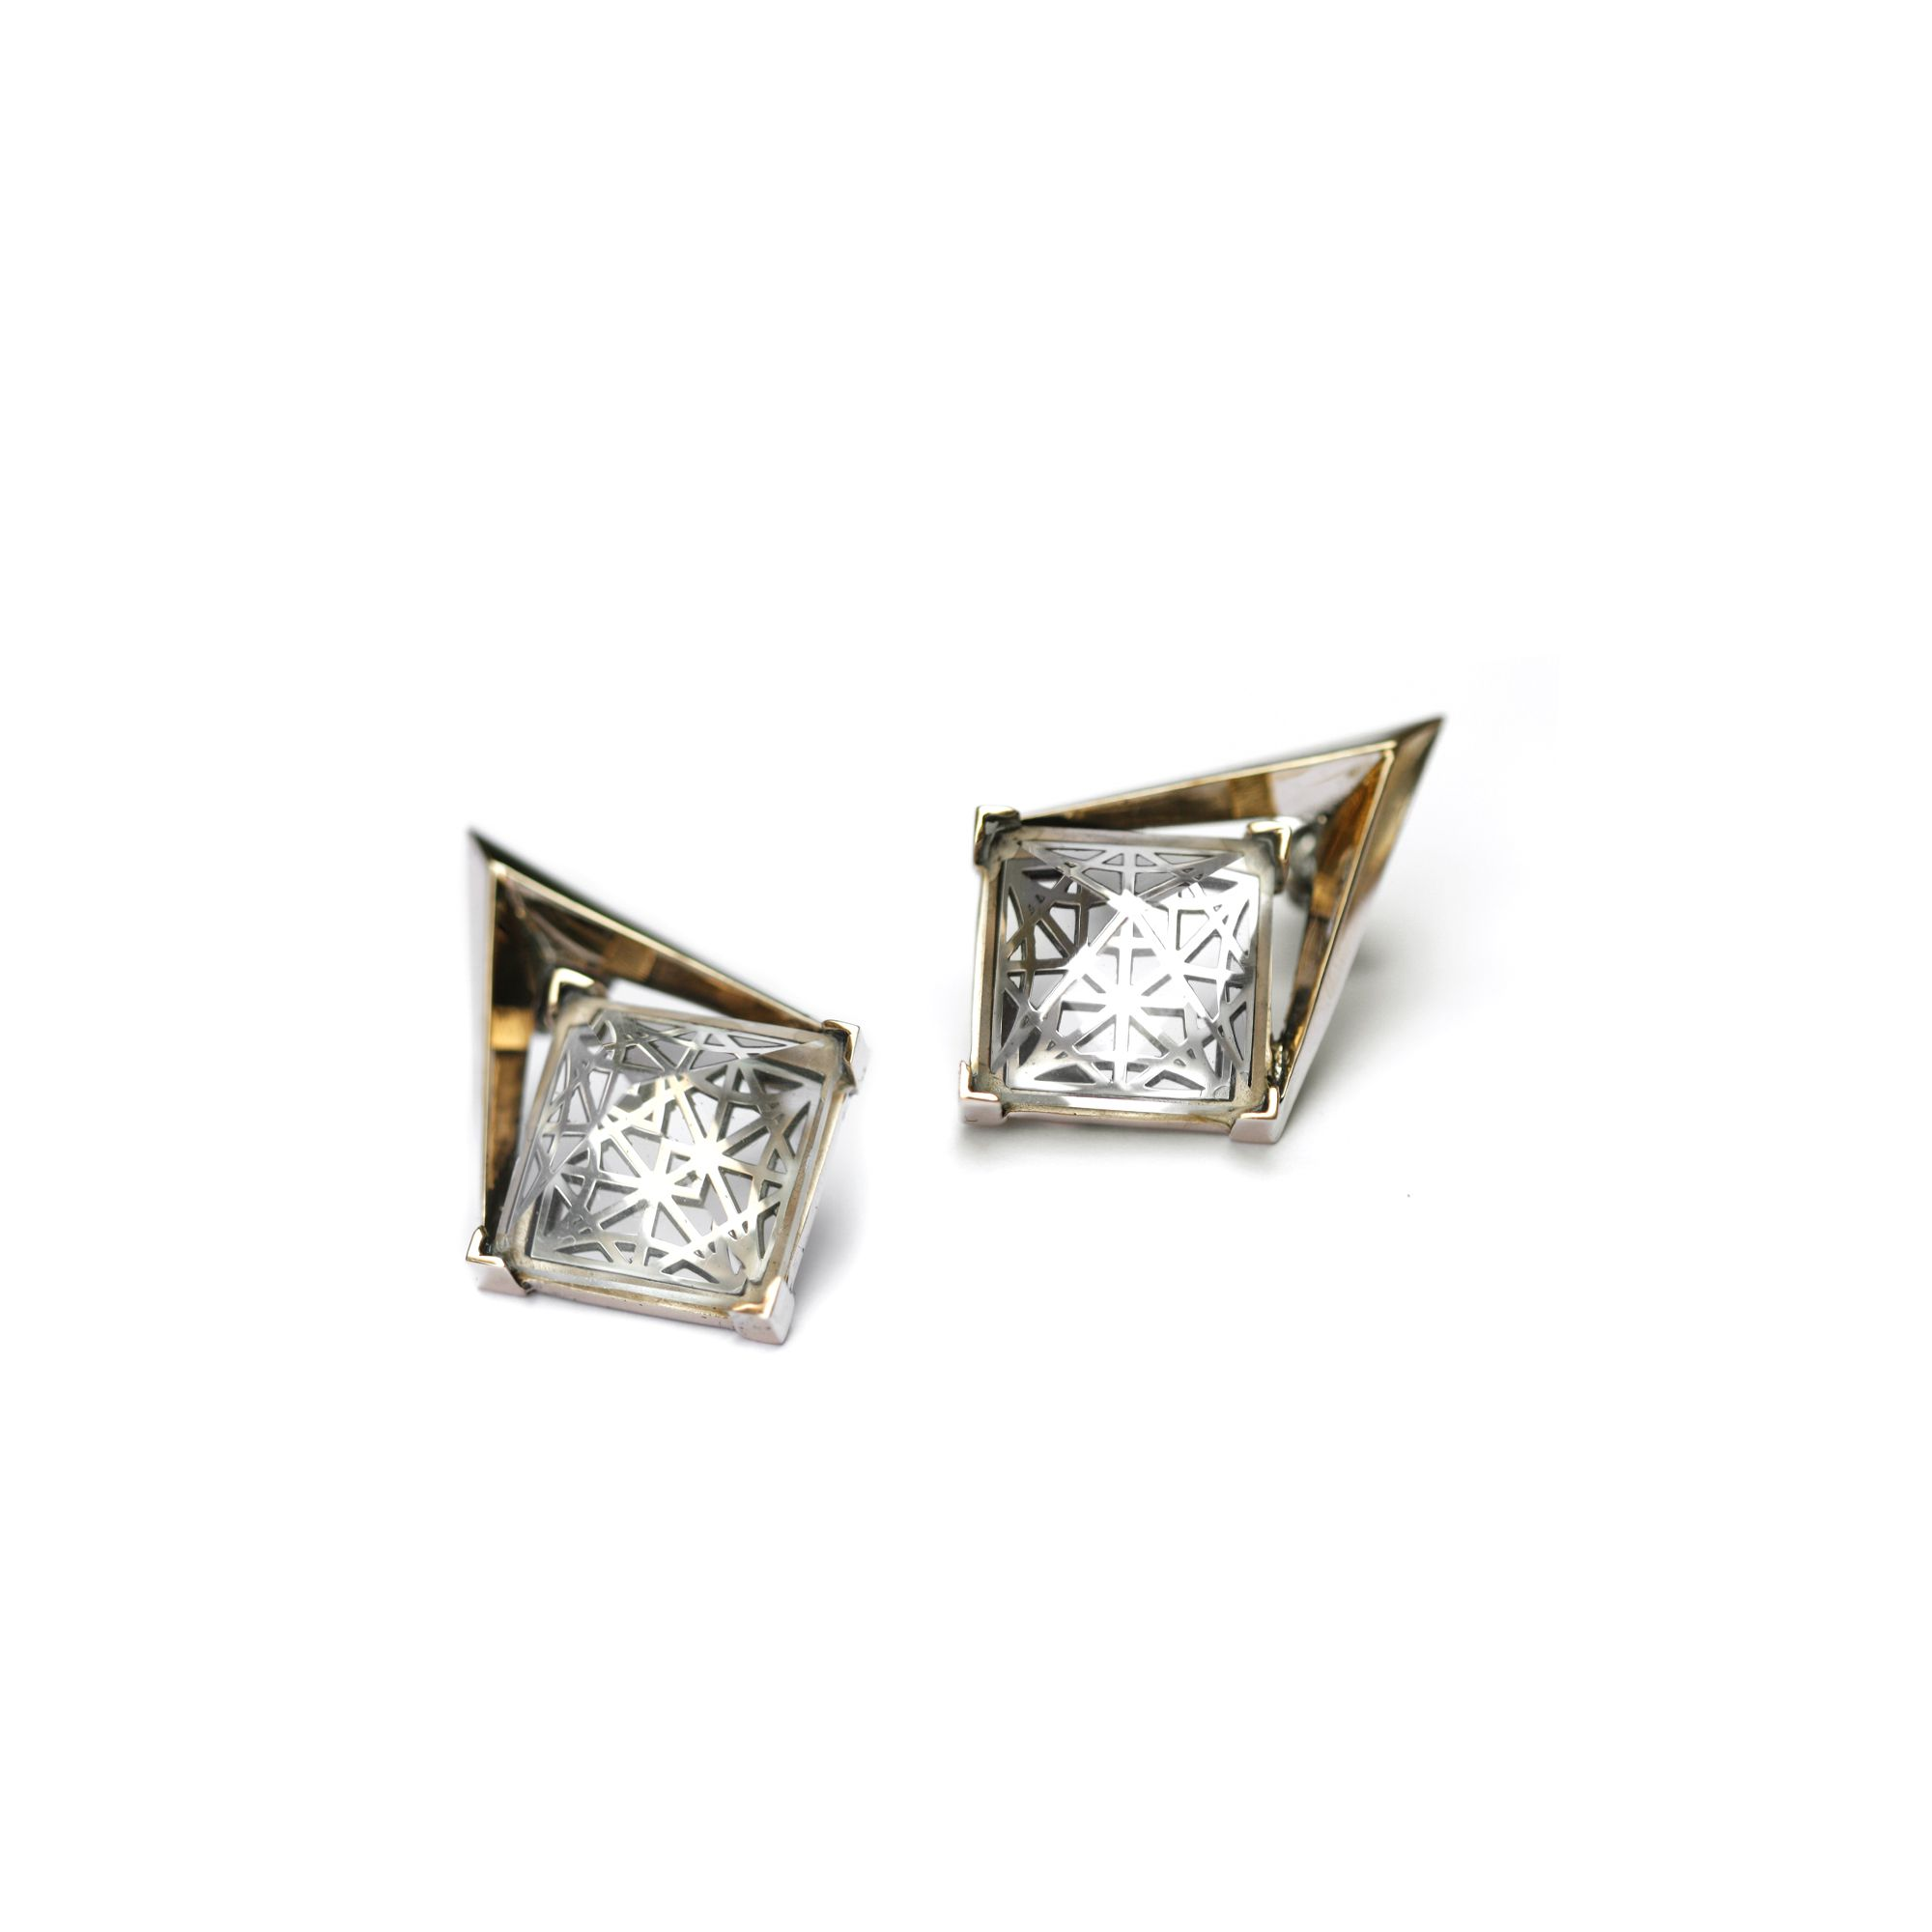 'Entropia' earrings with grid Bronze and silver earrings with pyramid